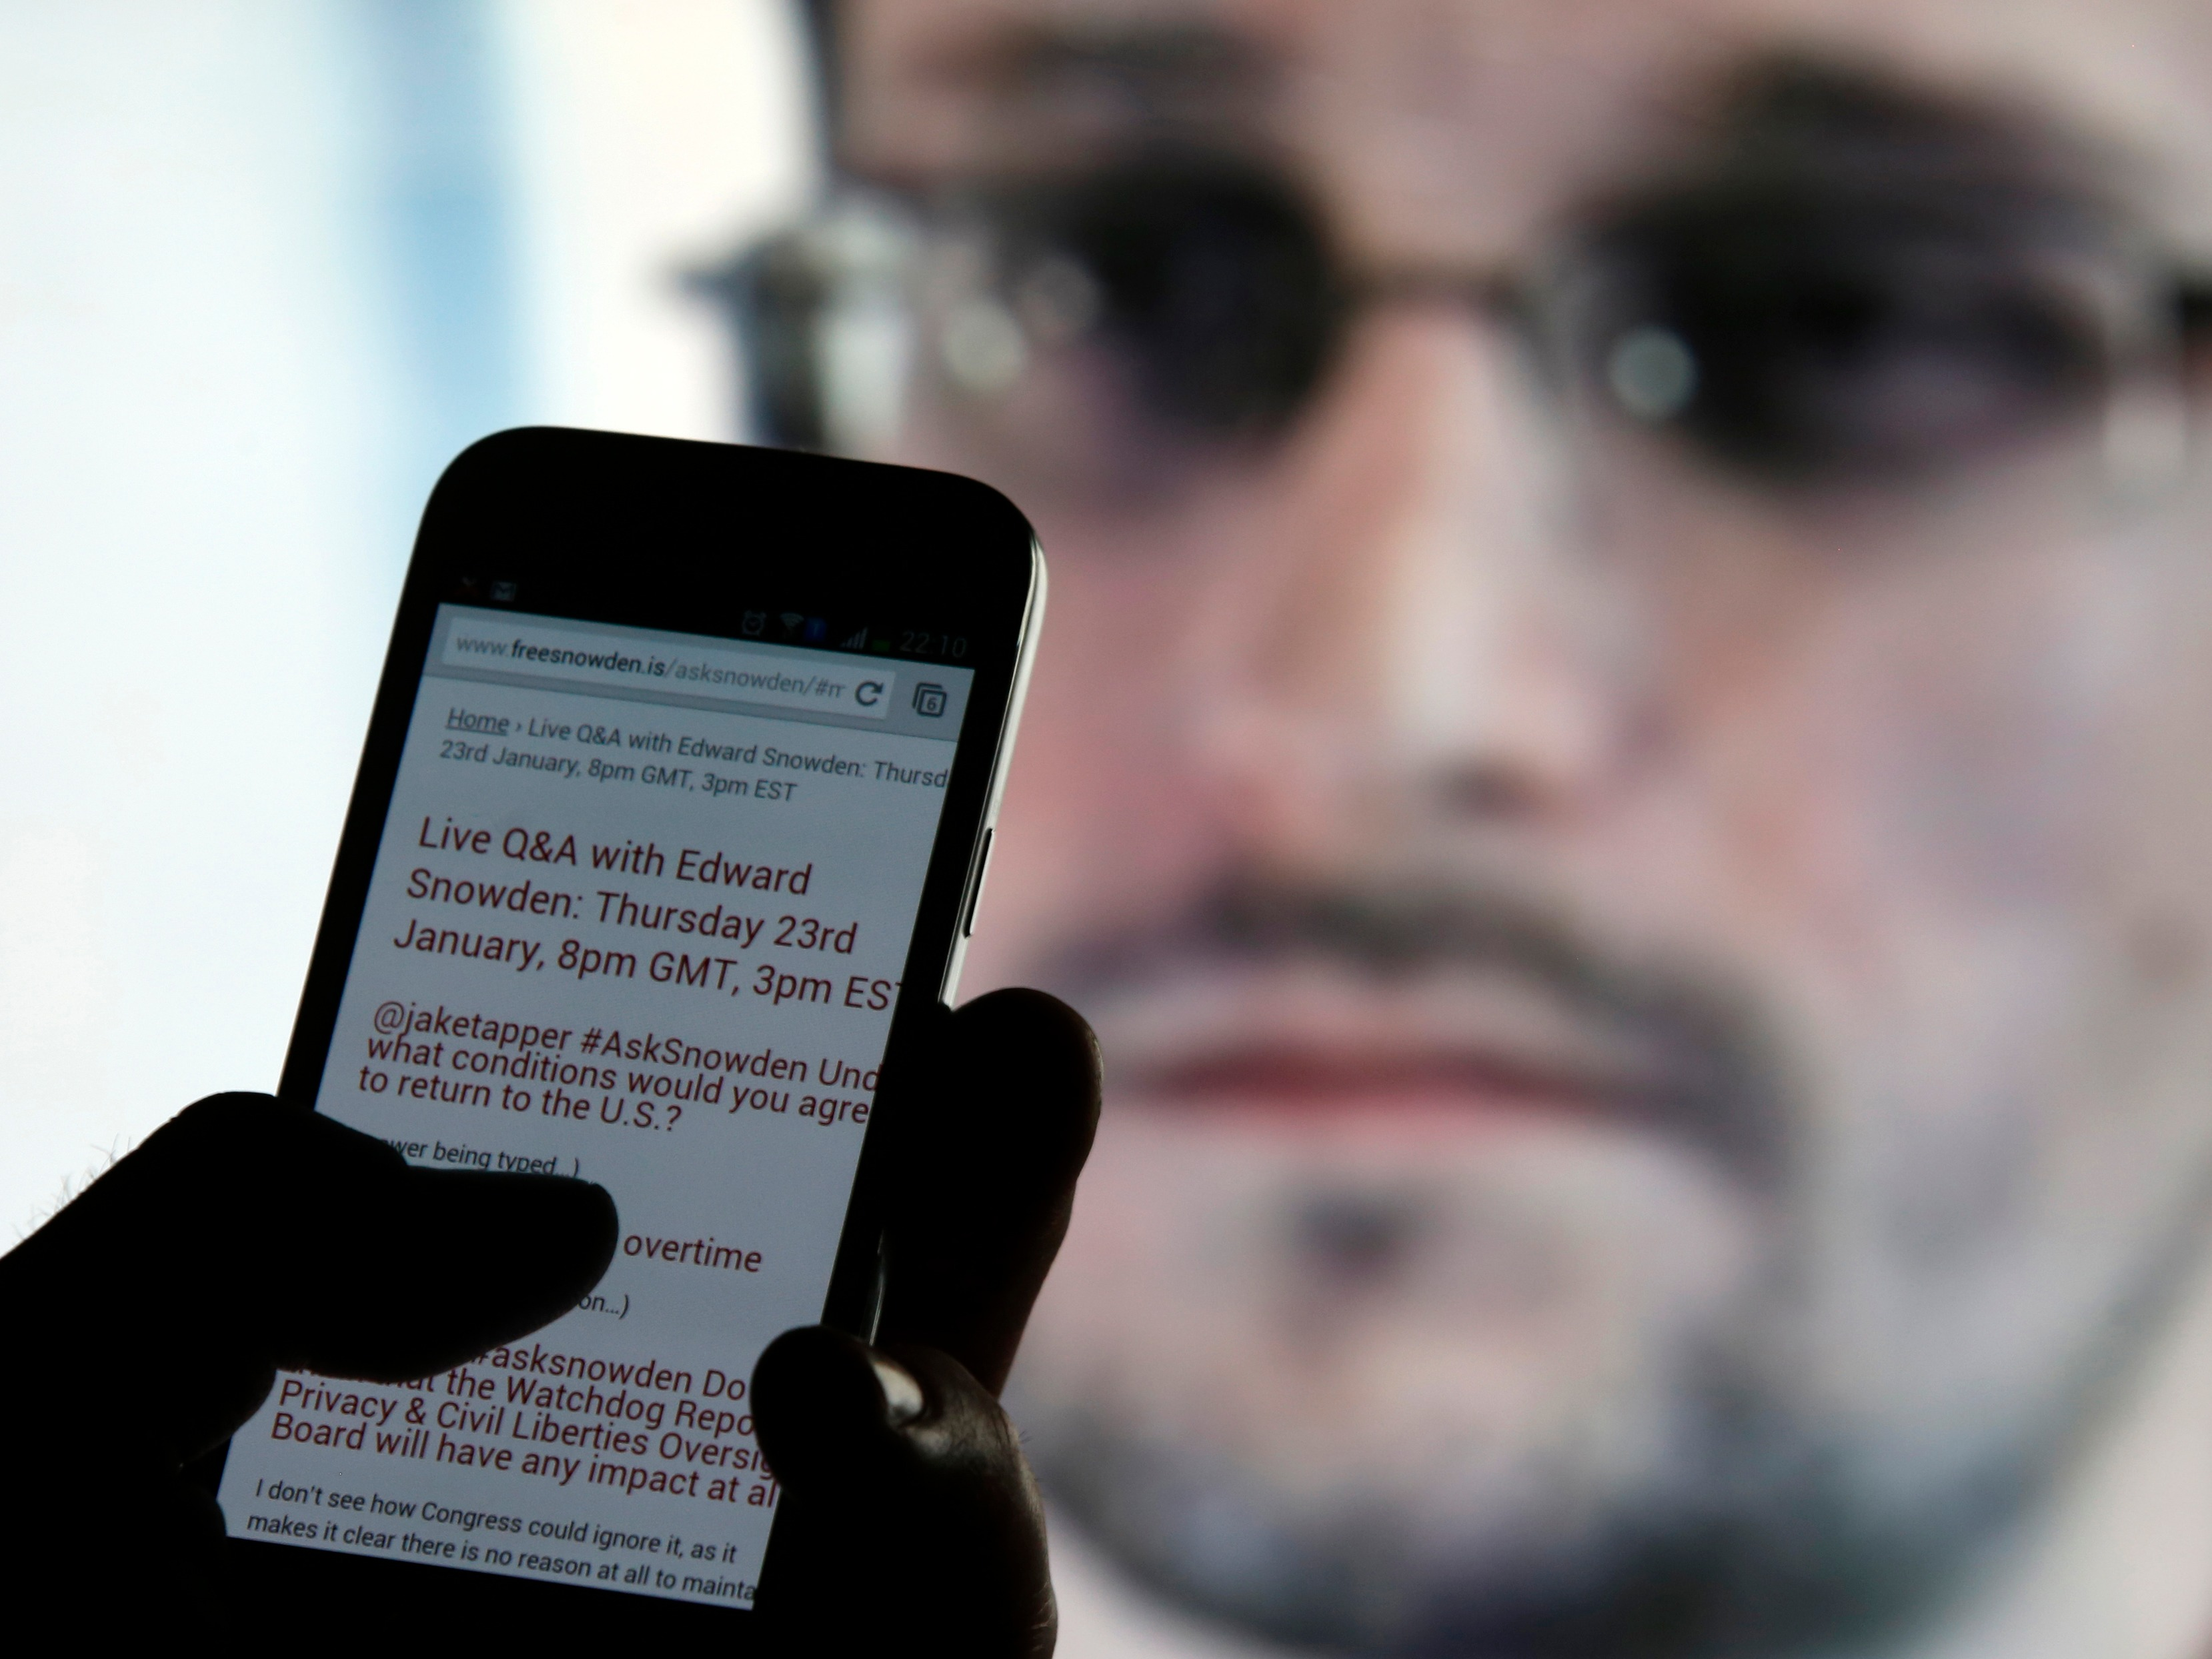 edward-snowden-just-joined-twitter--and-he-is-already-trolling-the-nsa